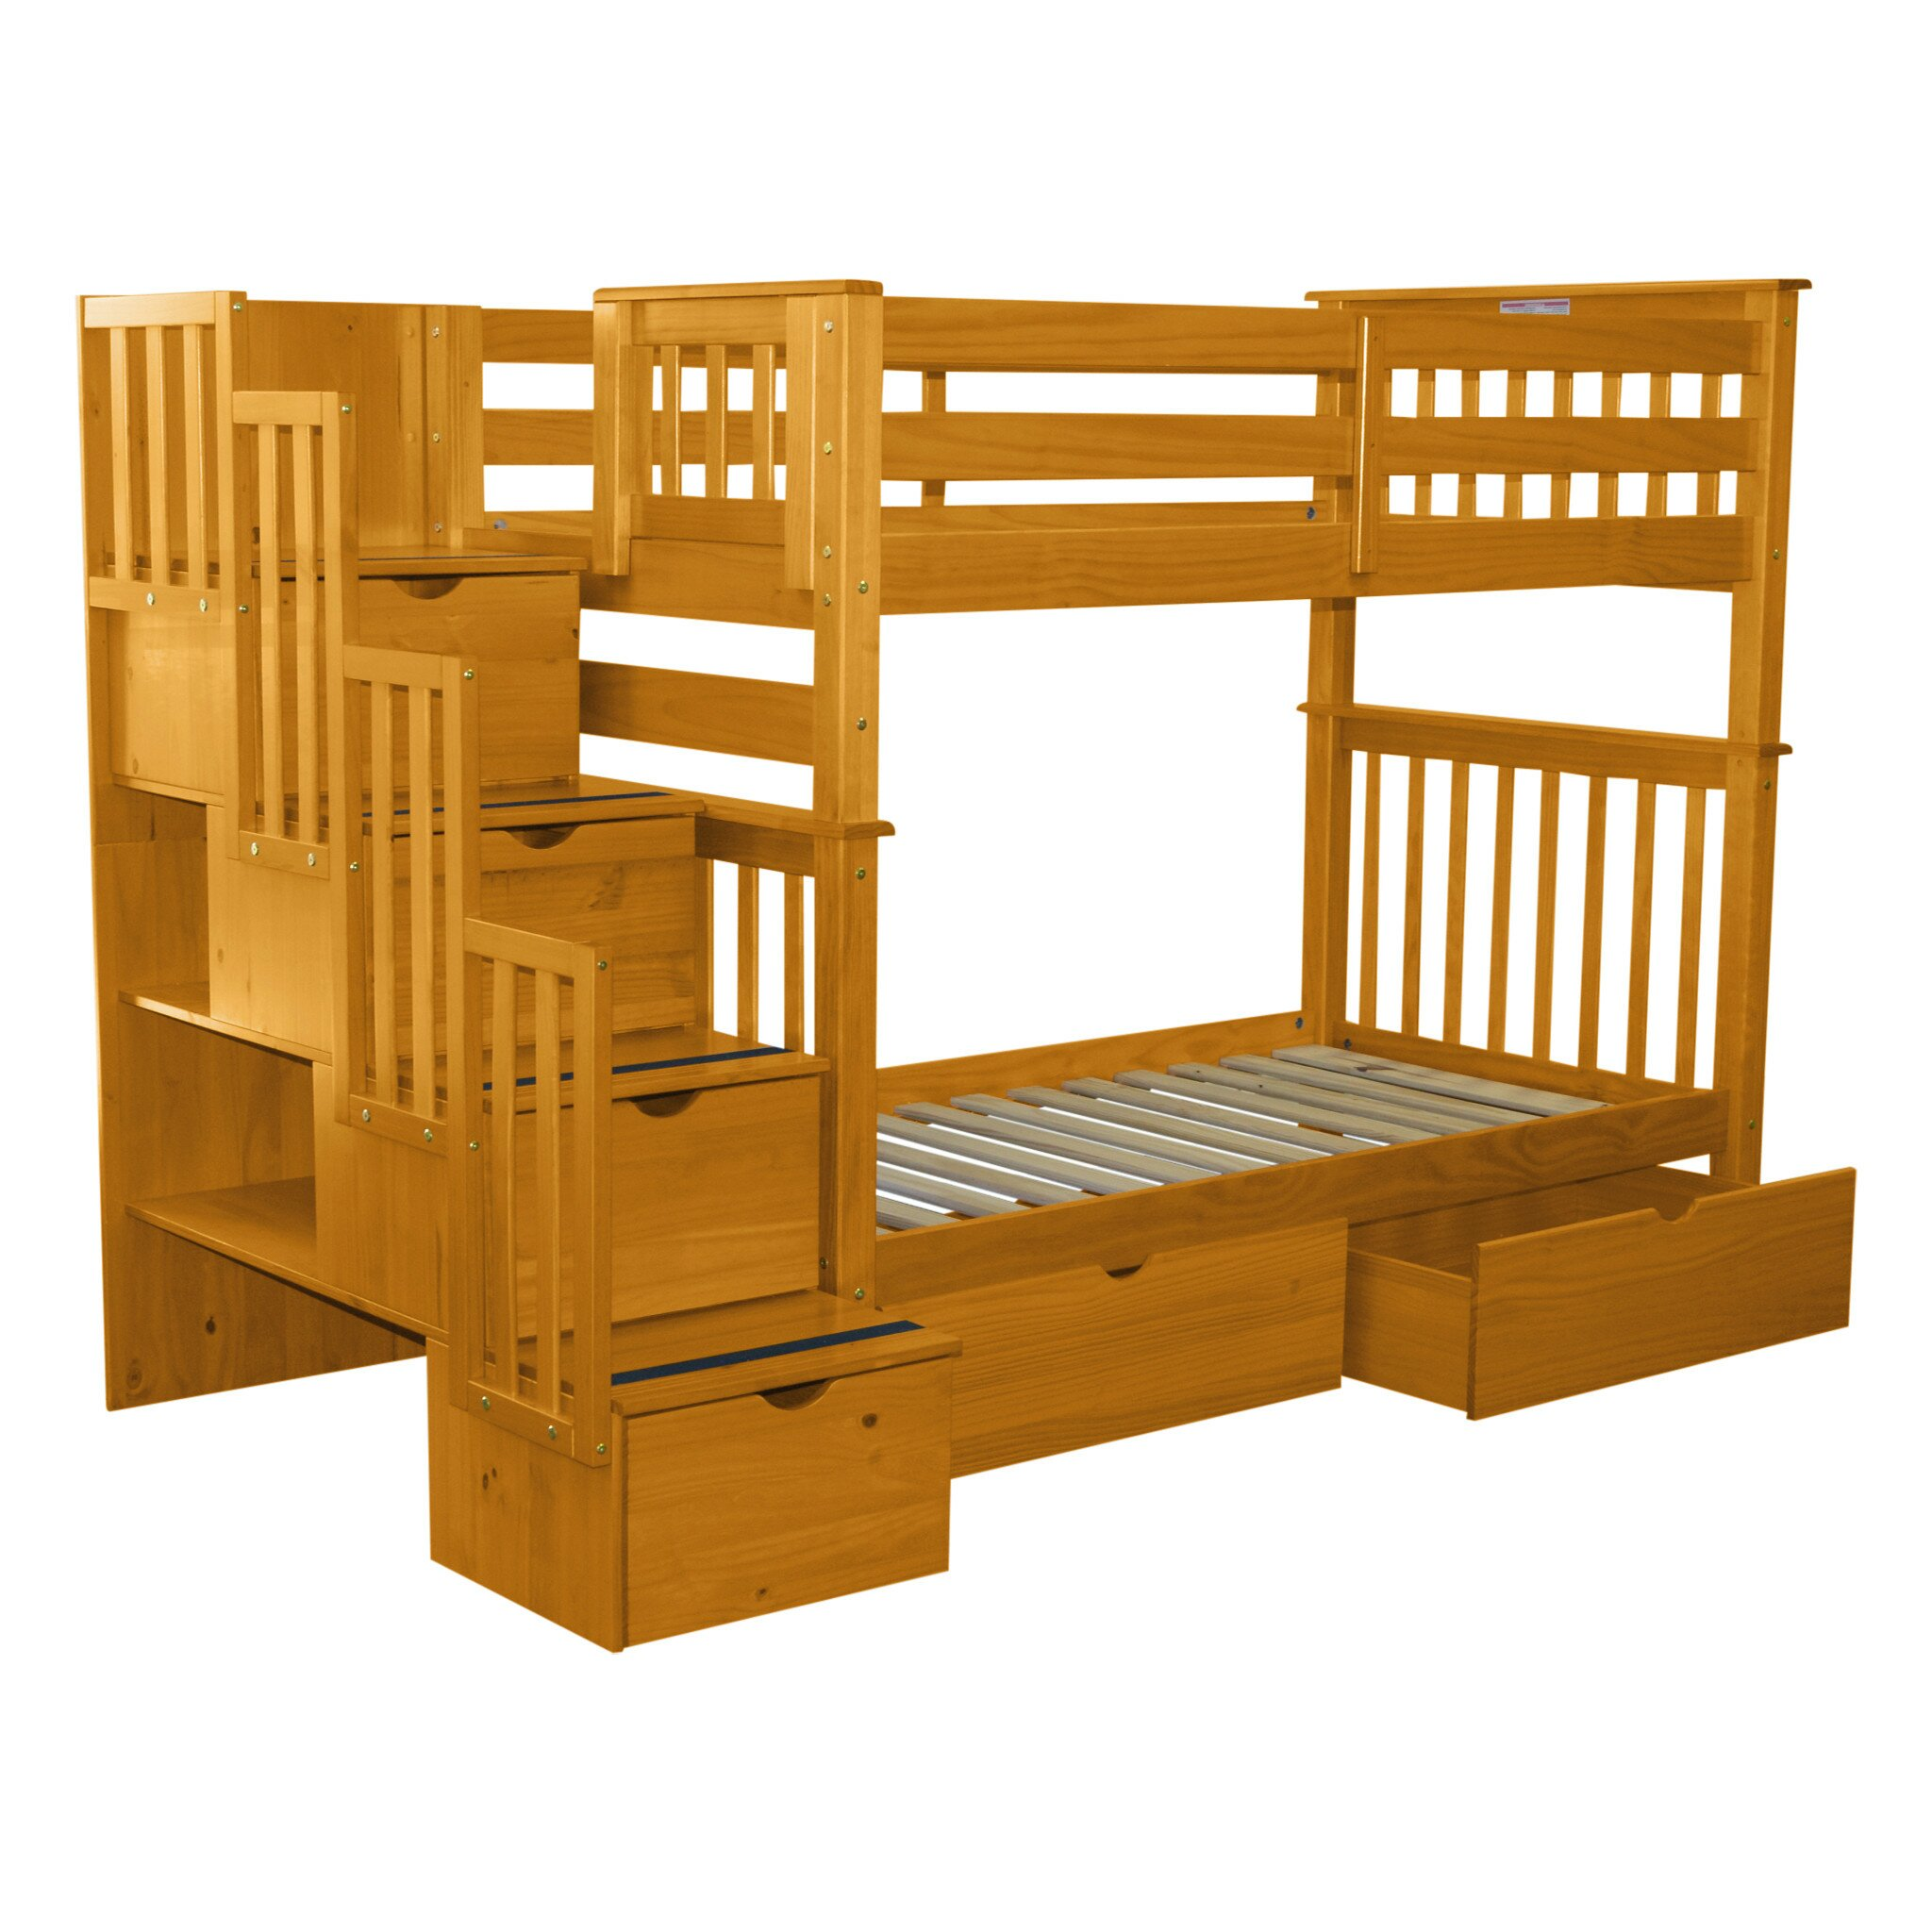 Bedz King Twin Bunk Bed with Storage & Reviews